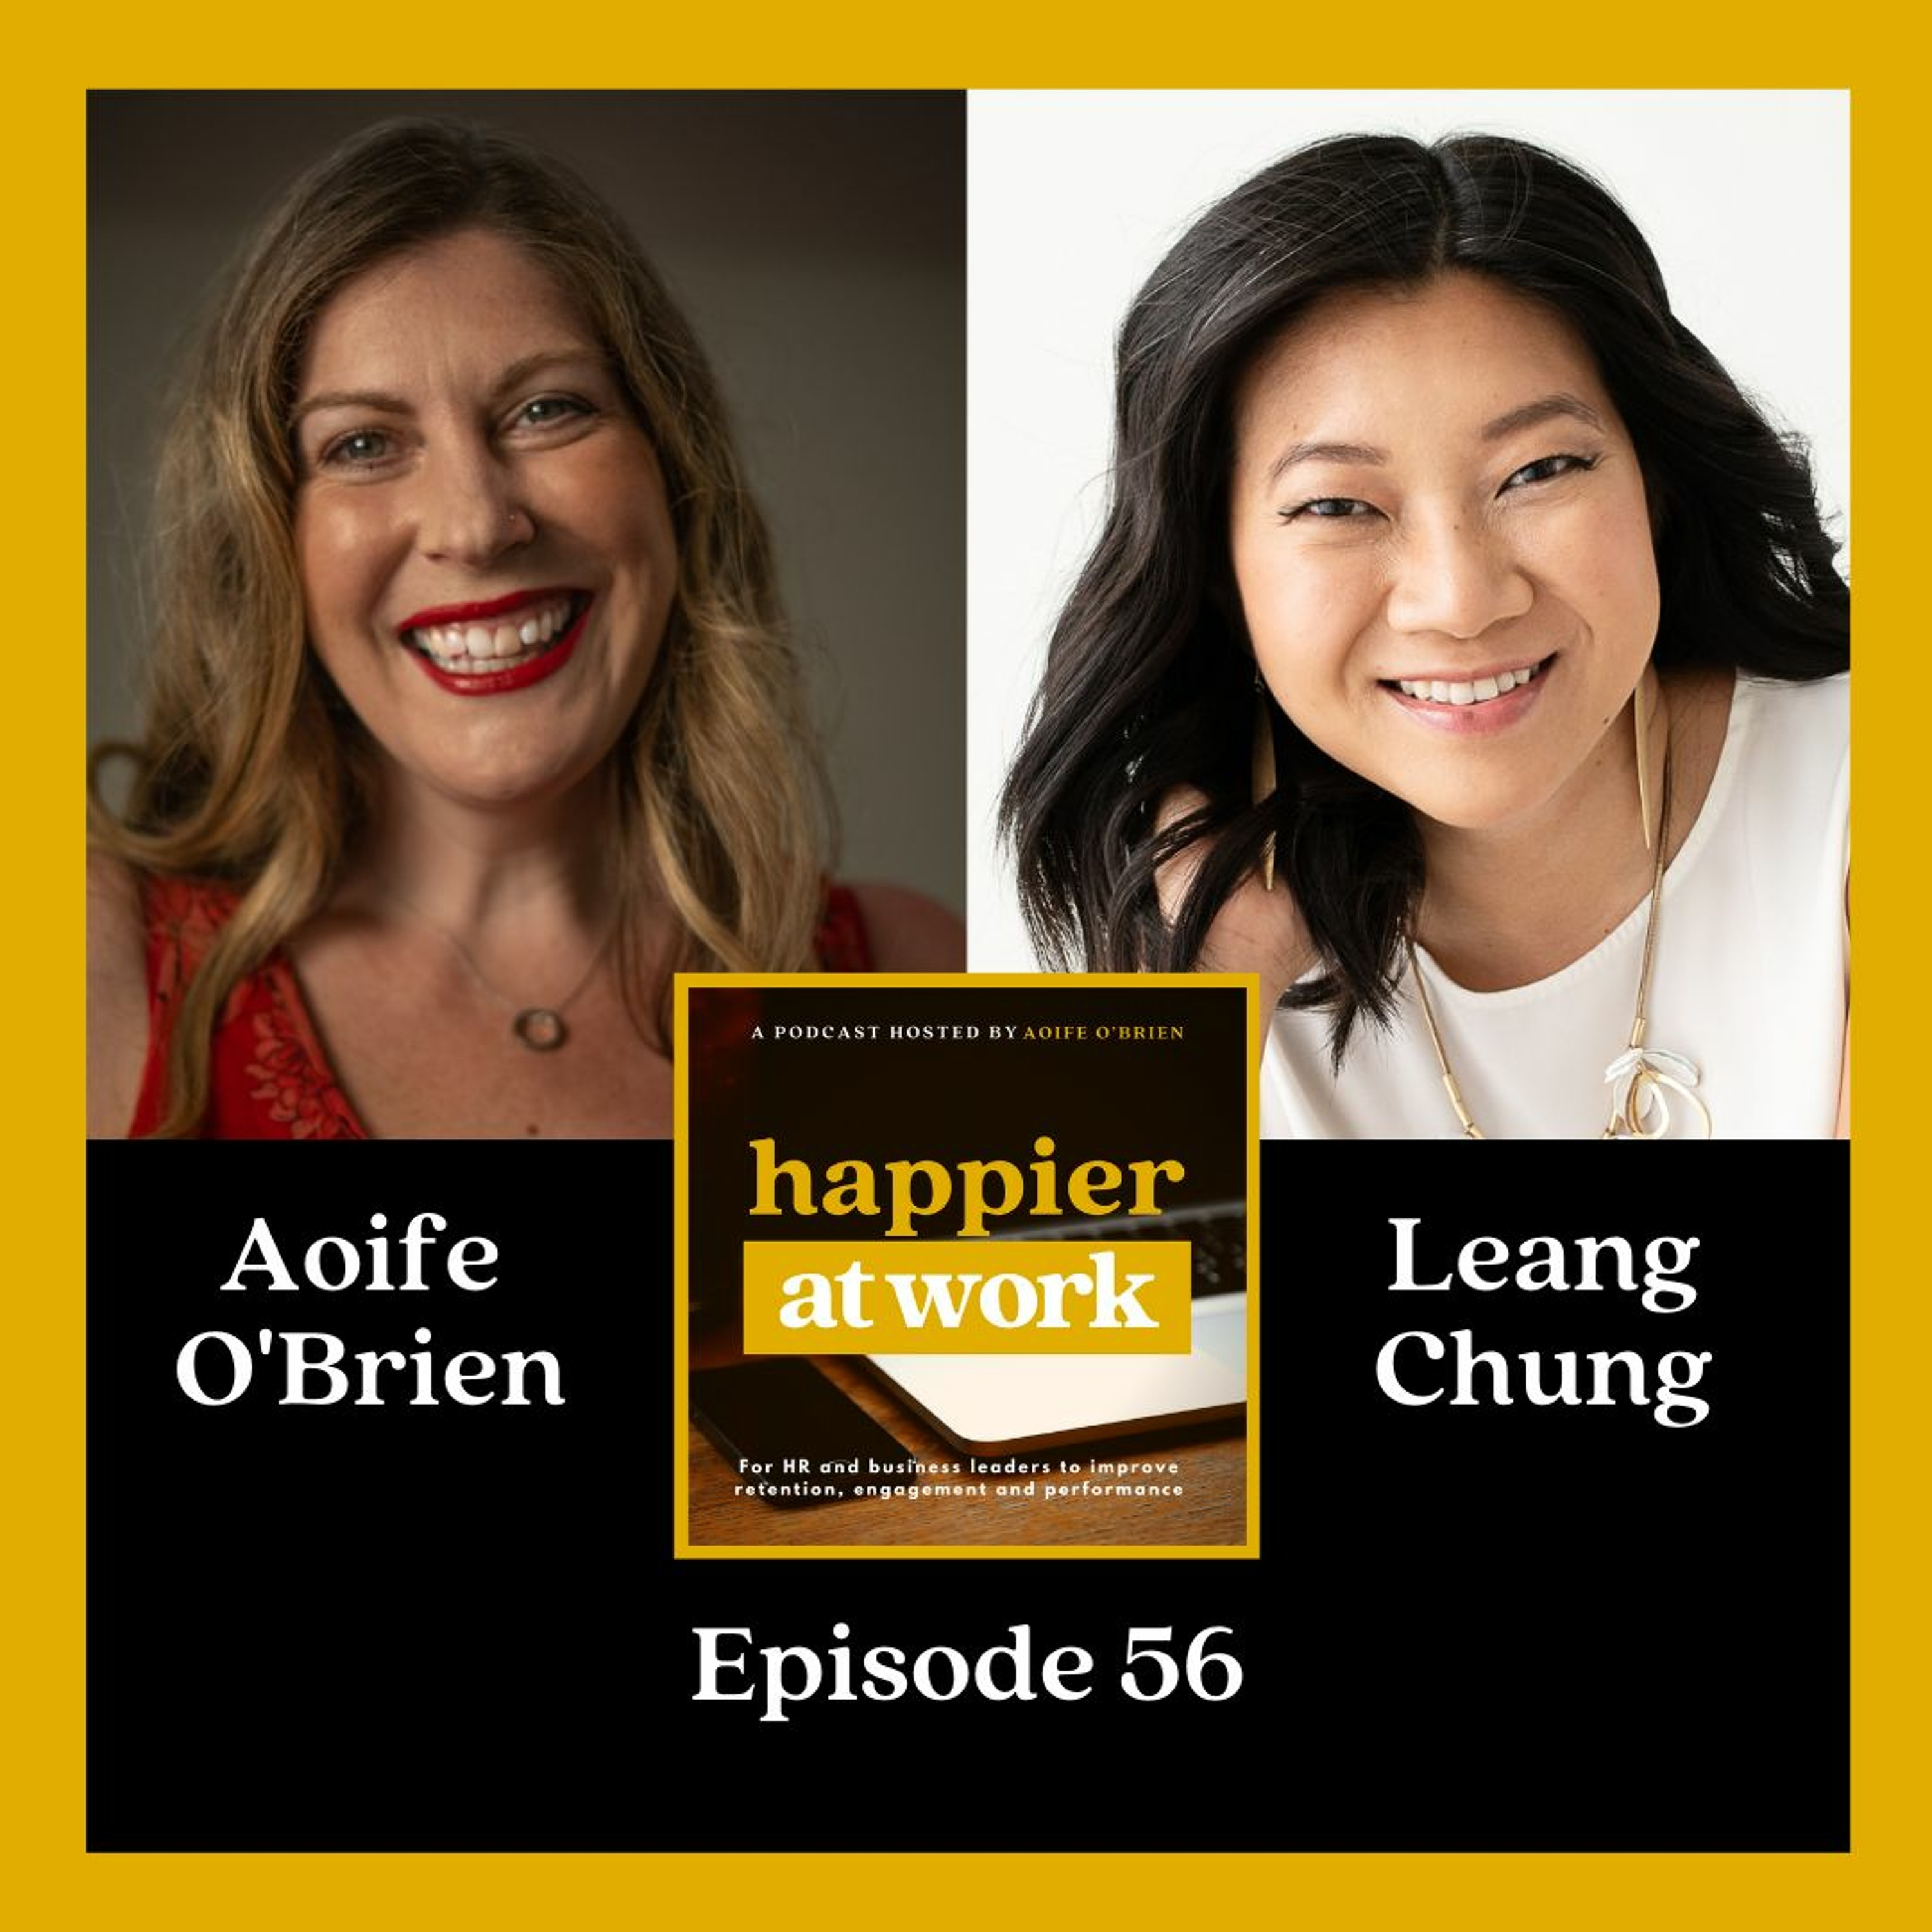 56: Leang Chung on empowering women to pursue professional growth